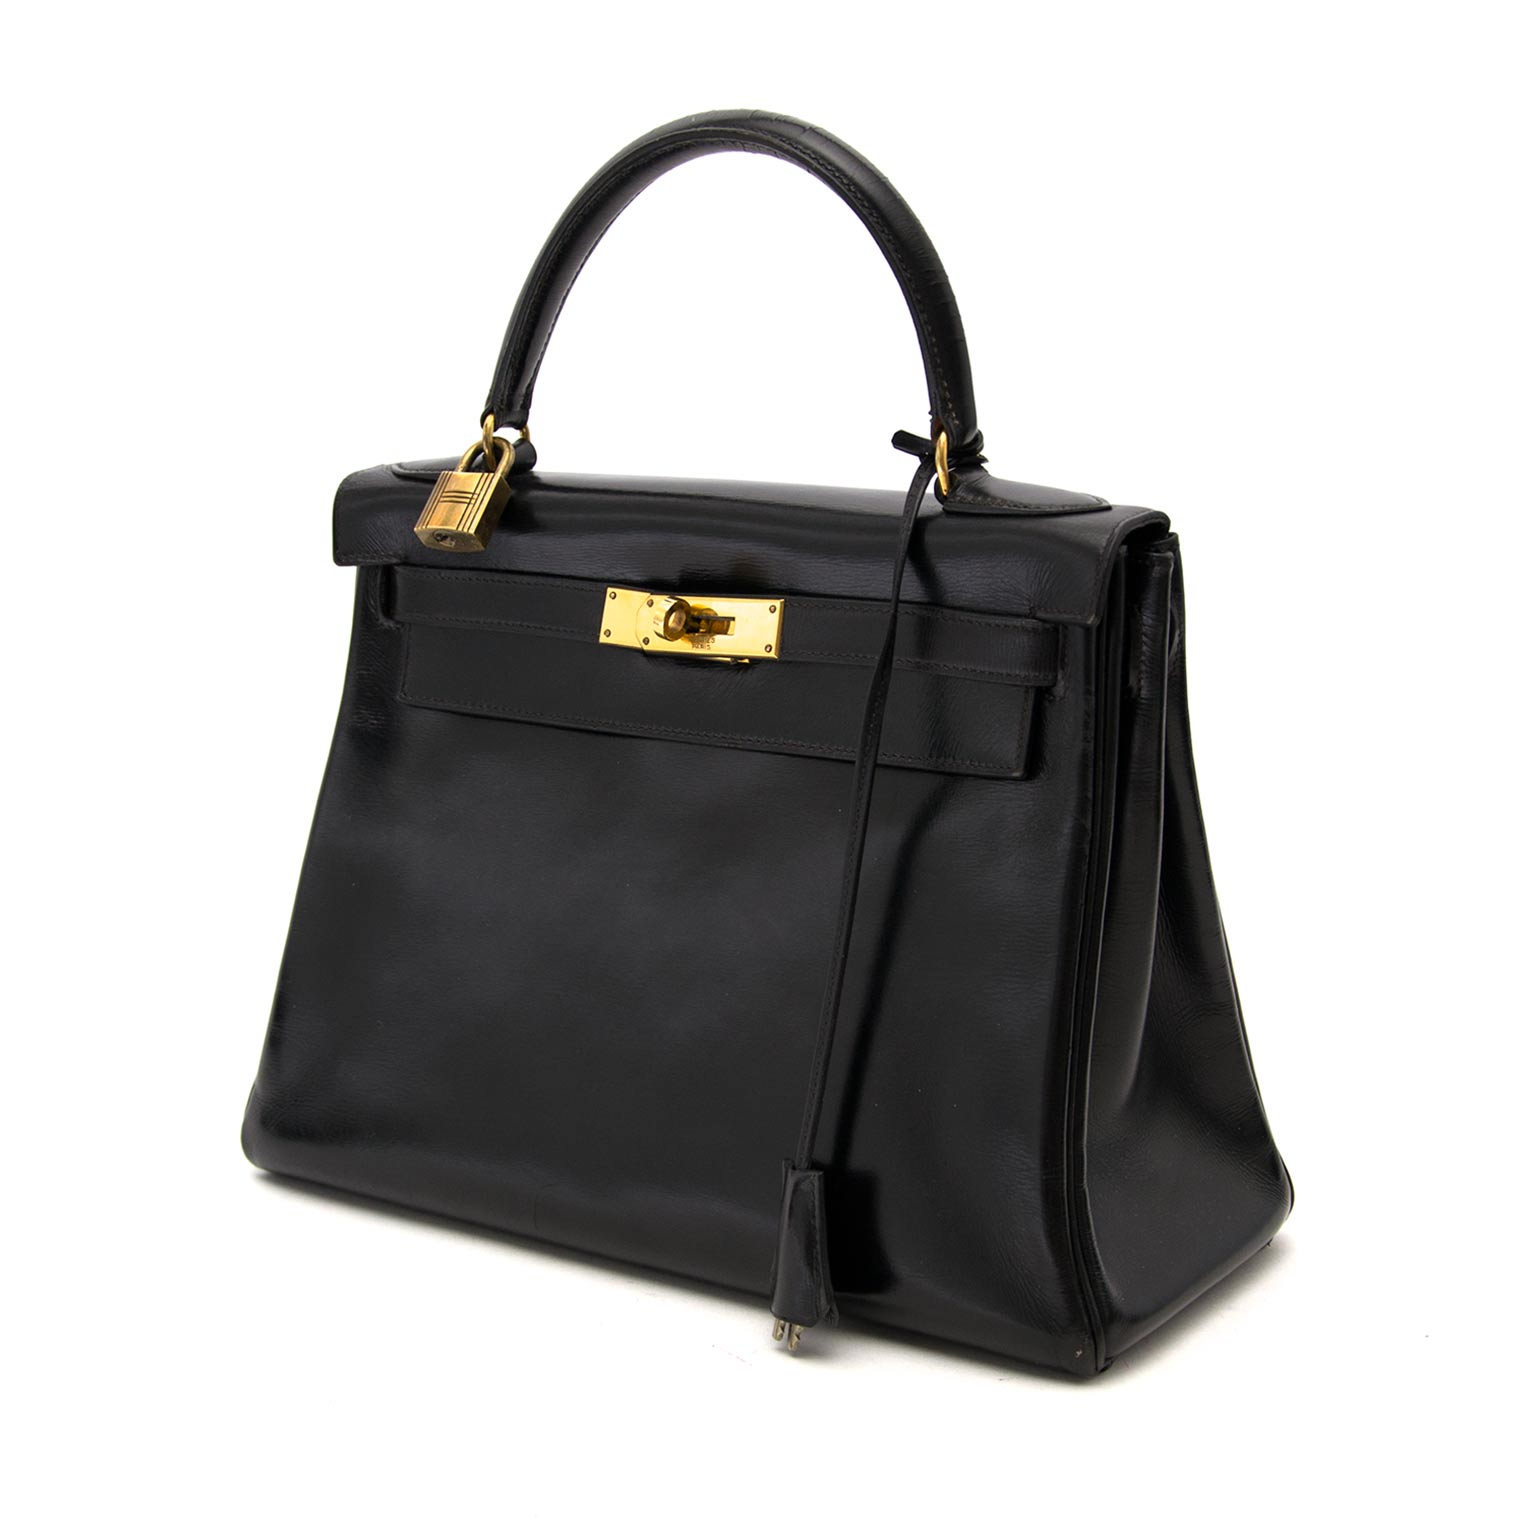 f5751d1393b7 ... Buy safe and secure online at labellov.com for the best price Hermes  kelly 28